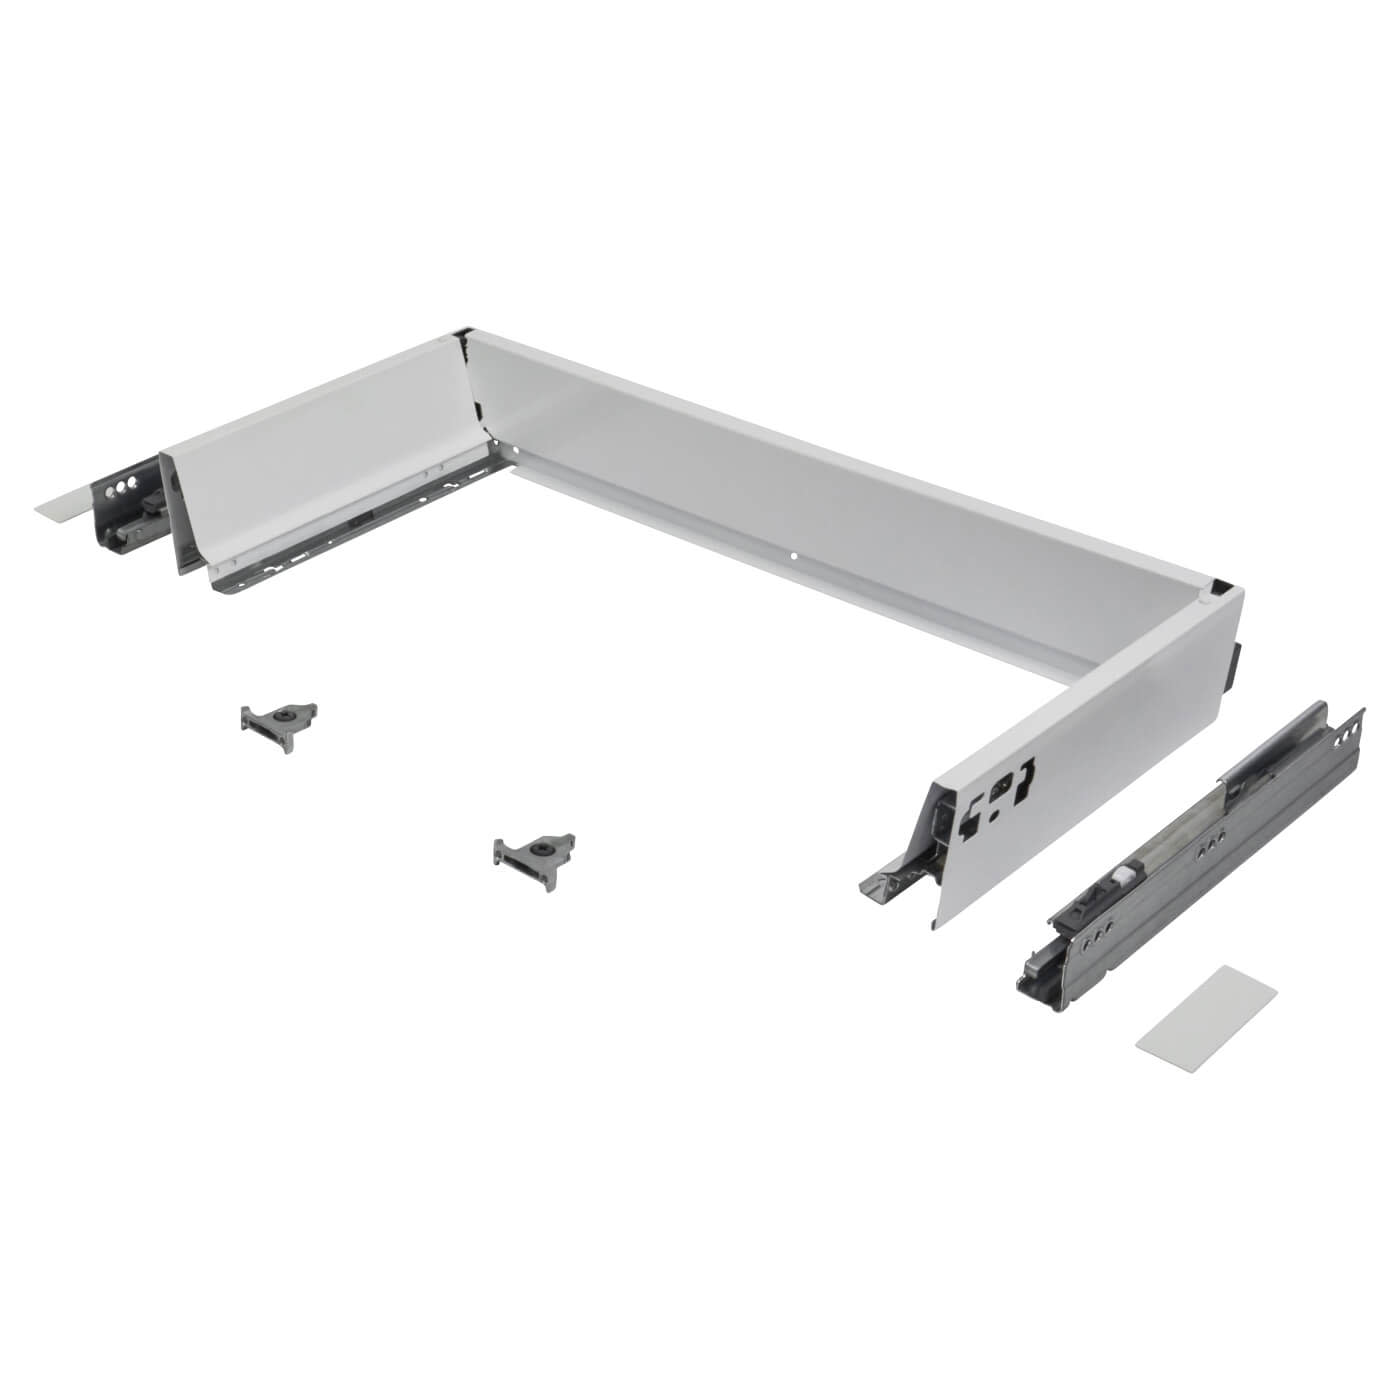 Blum TANDEMBOX ANTARO Drawer Pack - BLUMOTION Soft Close - (H) 84mm x (D) 350mm x (W) 600mm - White)